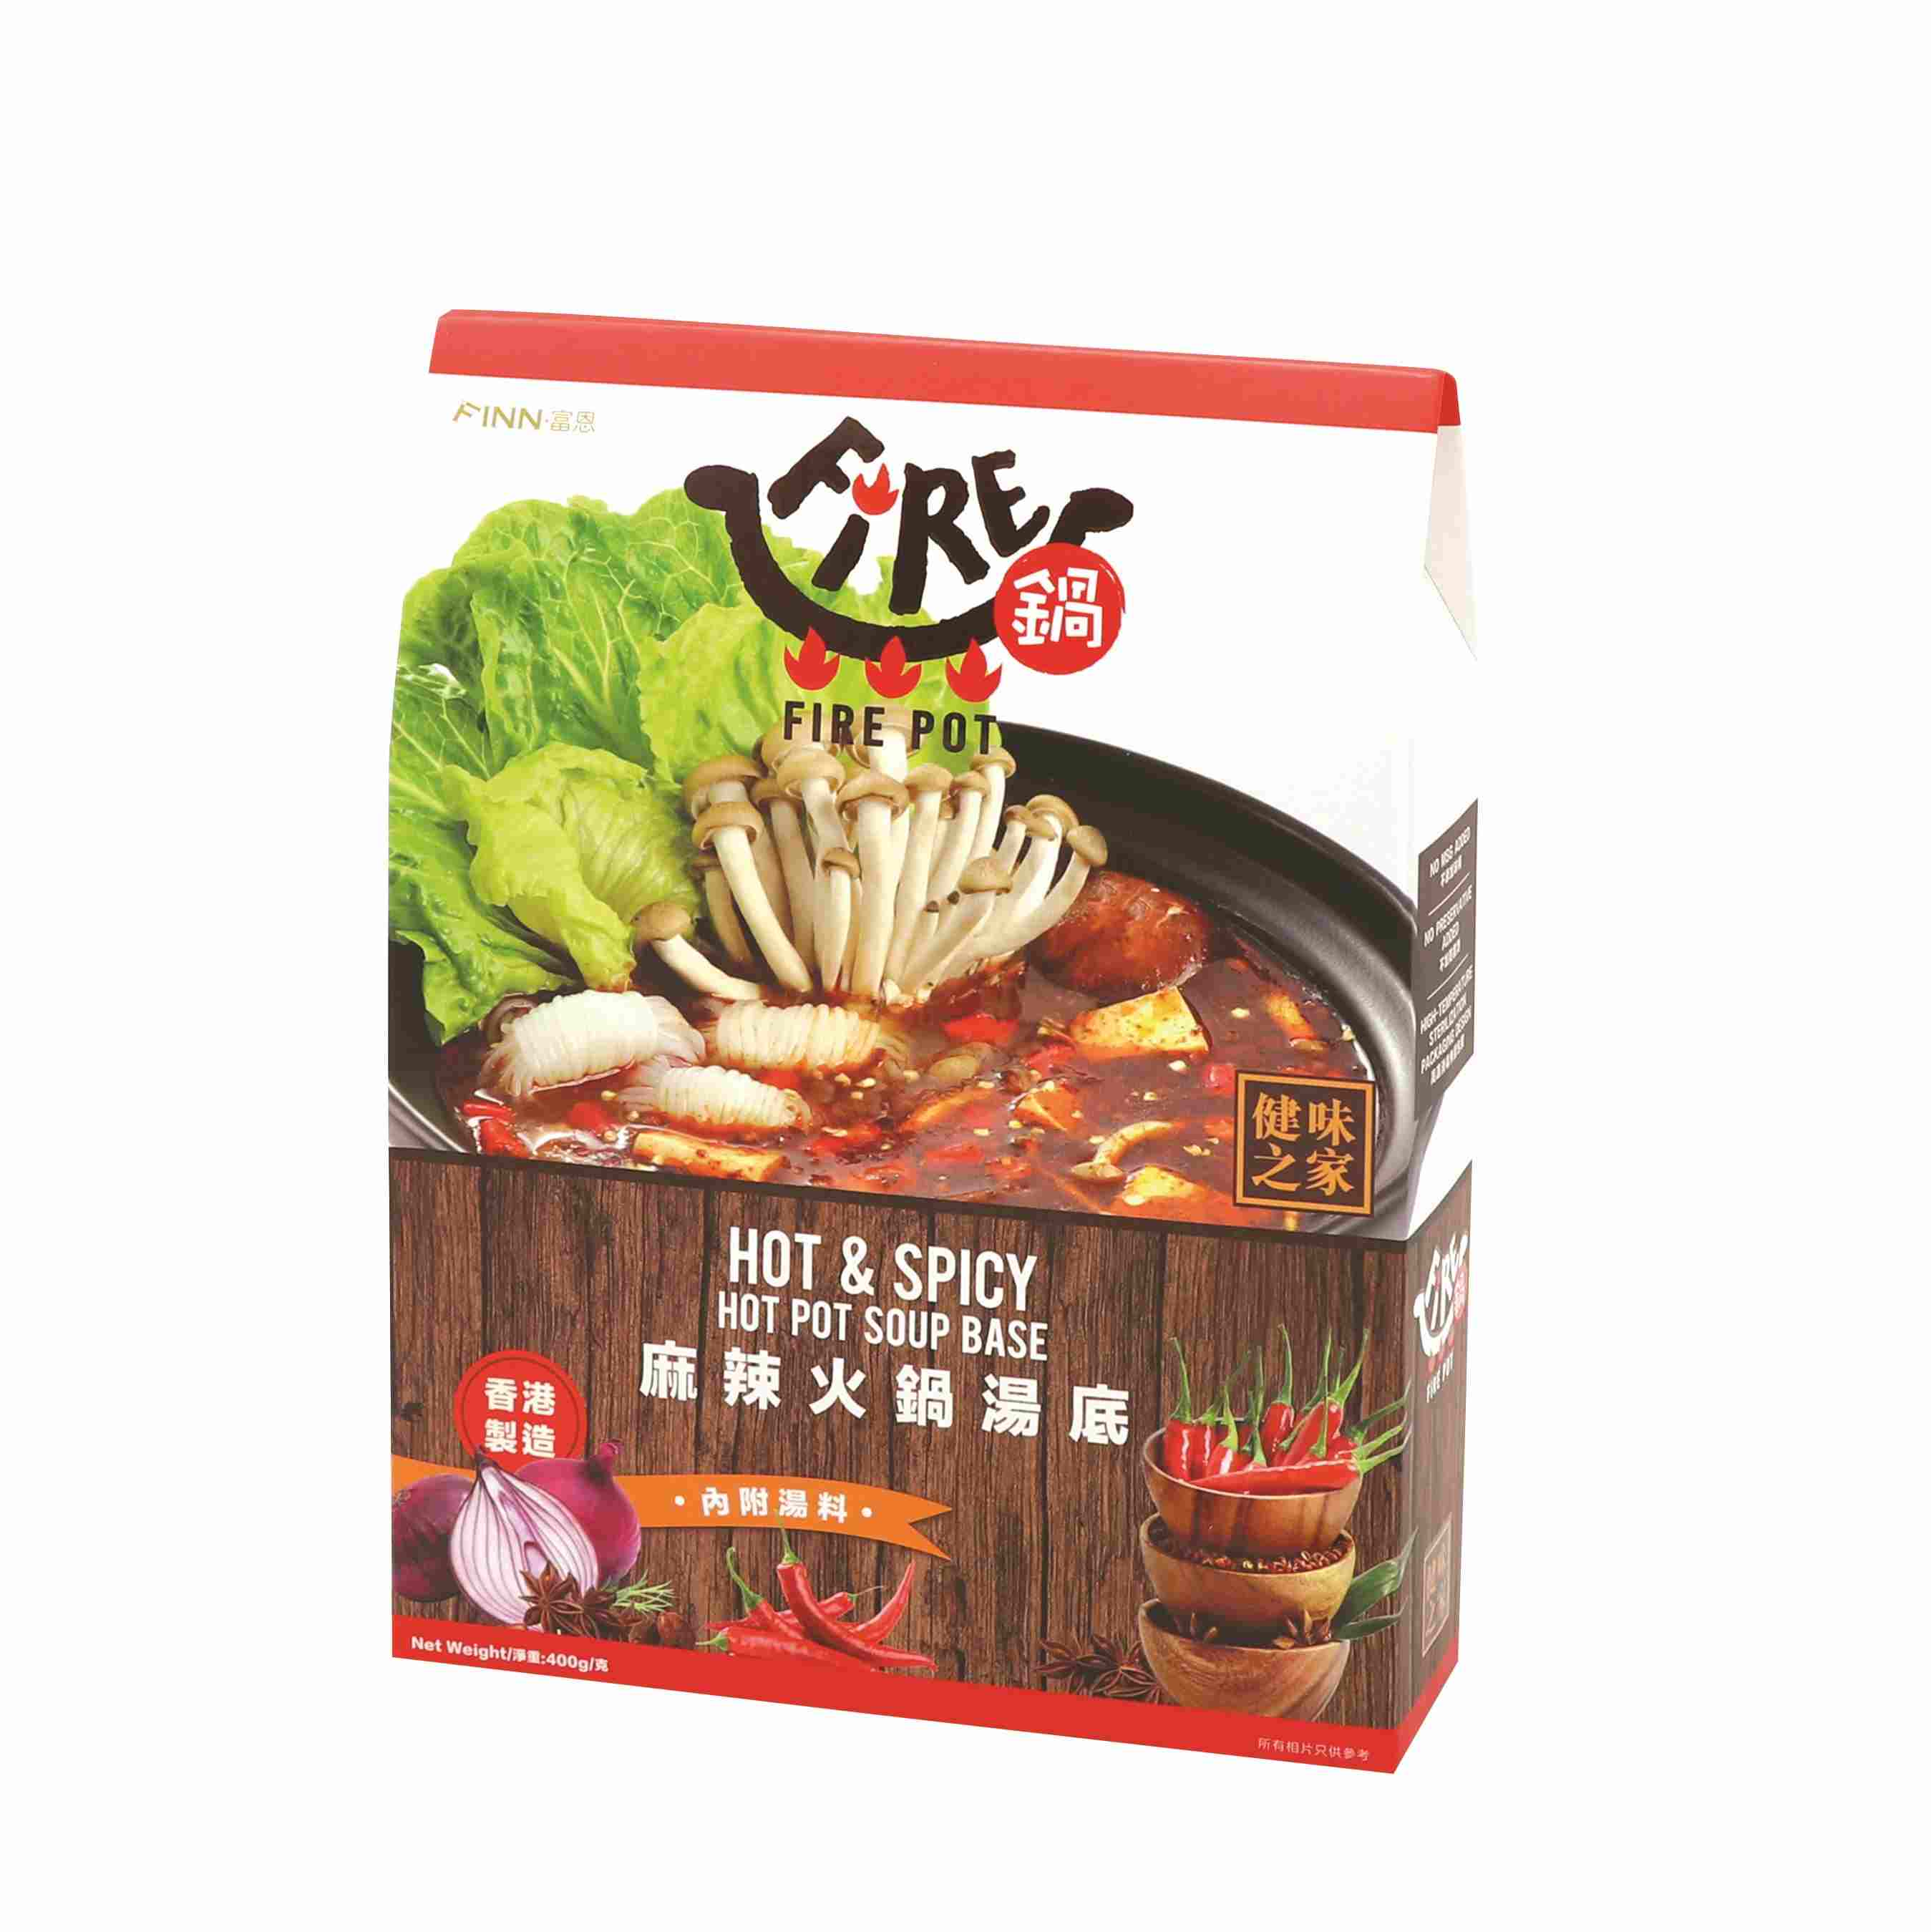 <Exclusive upgrade upon purchase of hotpot set>FIREPOT-HOT+SPICY HOTPOT SOUP BASE 400G